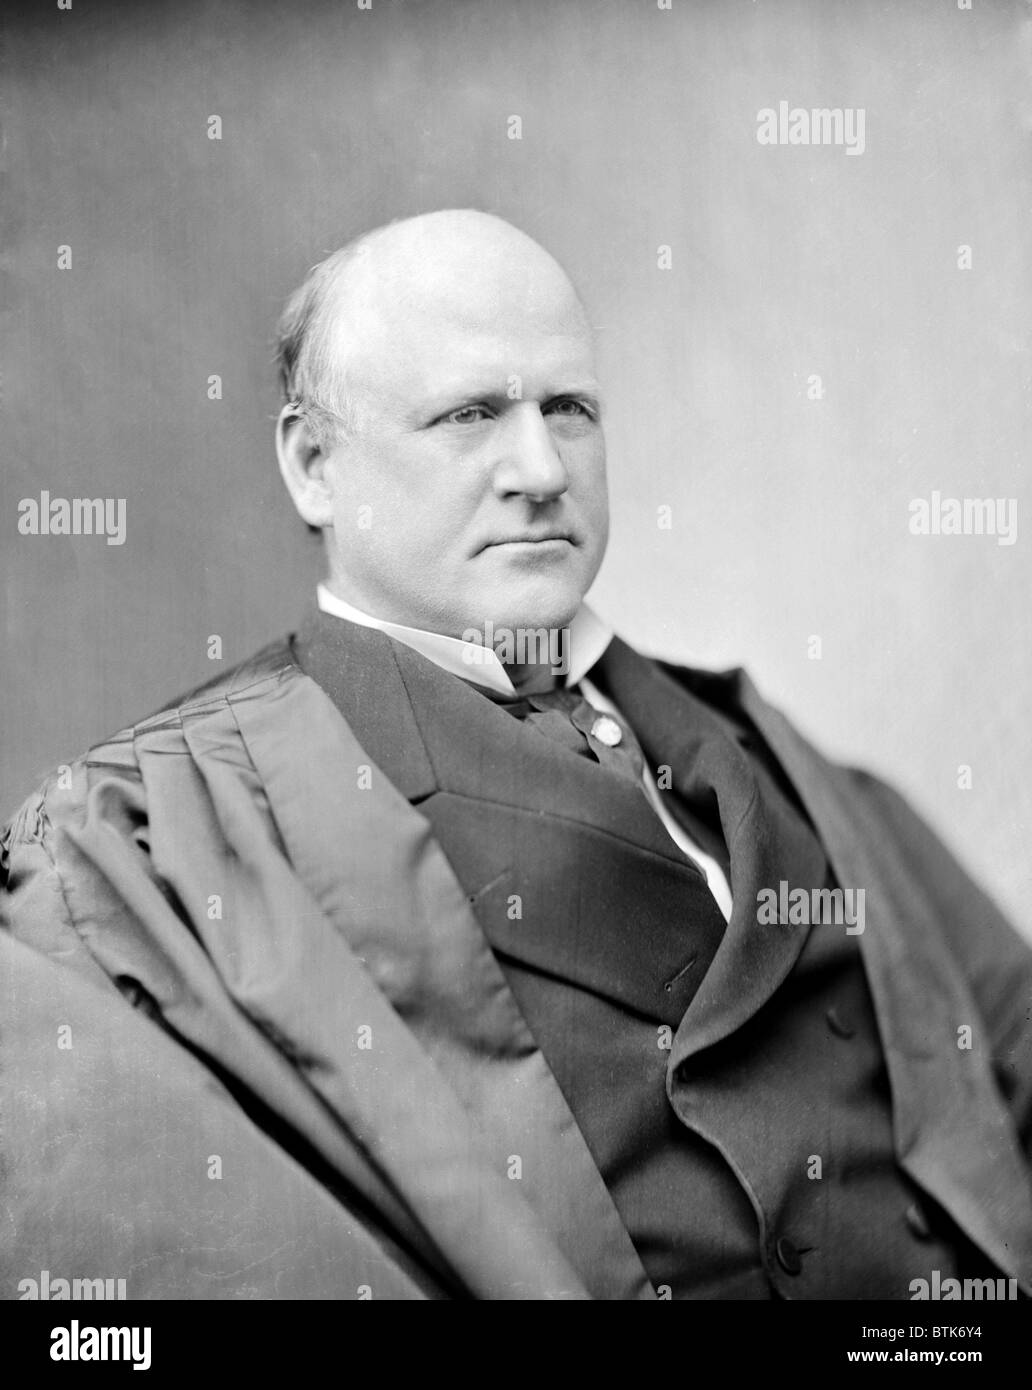 Judge John Marshall Harlan, Justice of the Supreme Court. He was the lone dissenter to the decision of Plessy v. - Stock Image